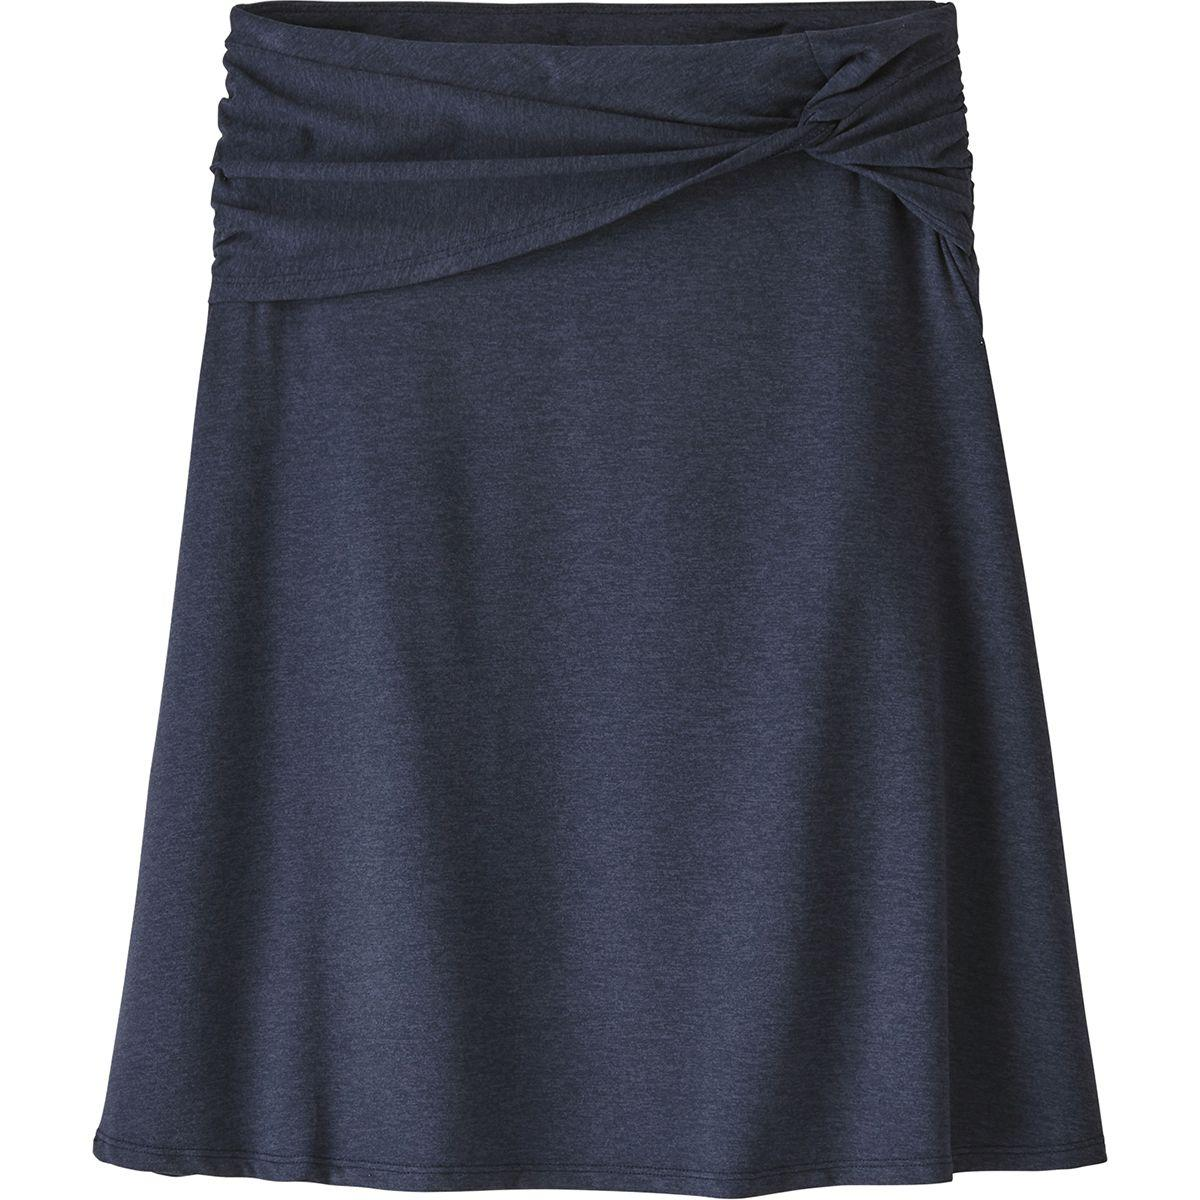 b0a71e41f Lyst - Patagonia Seabrook Skirt in Blue